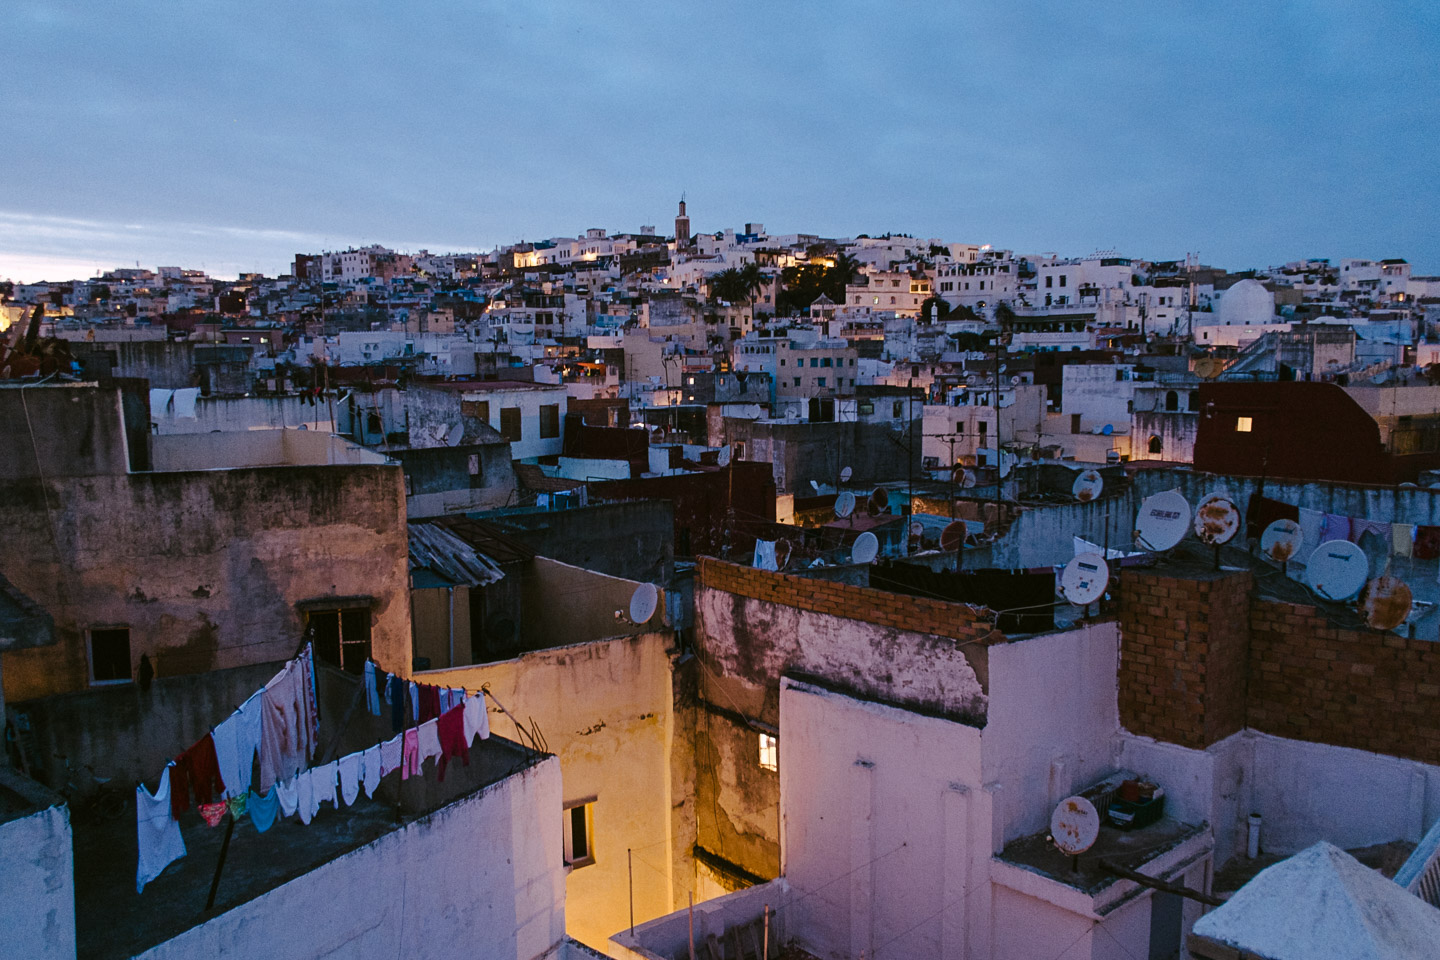 streetphotography Morocco - Melilla - Tetouan-Tanger by Daniel Kempf-Seifried-51